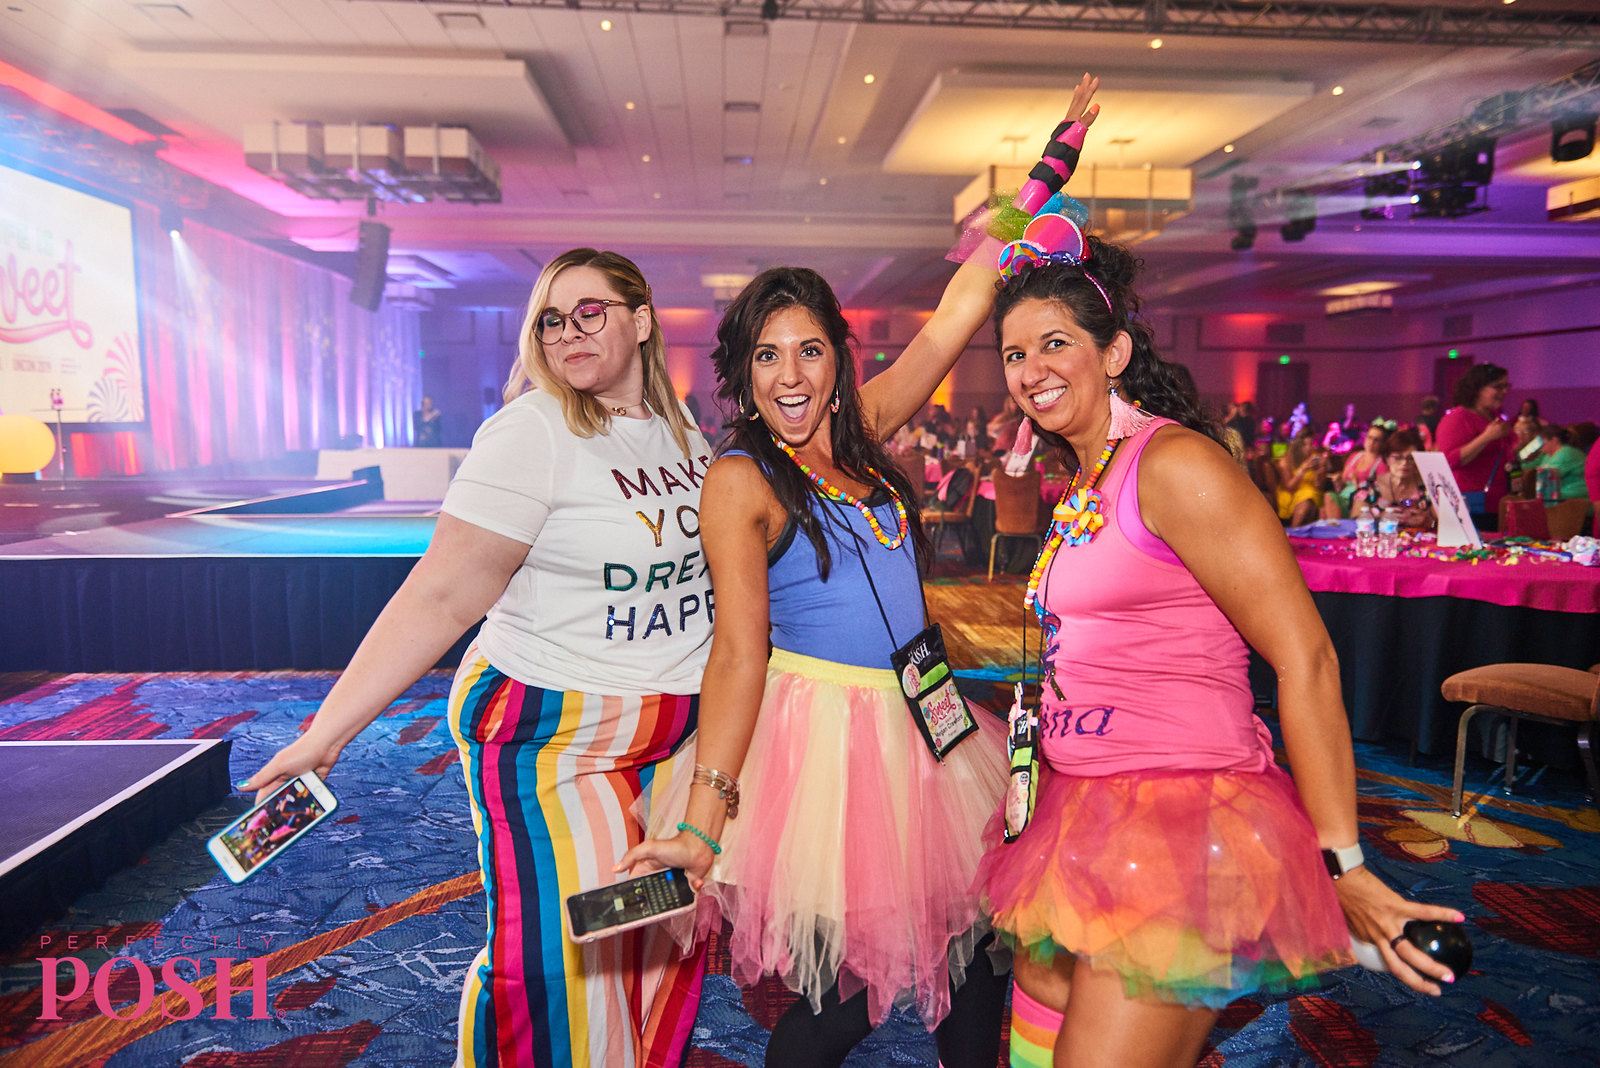 Perfectly Posh Influencers dress up for Posh Night 2019 at UnCon in Indianapolis